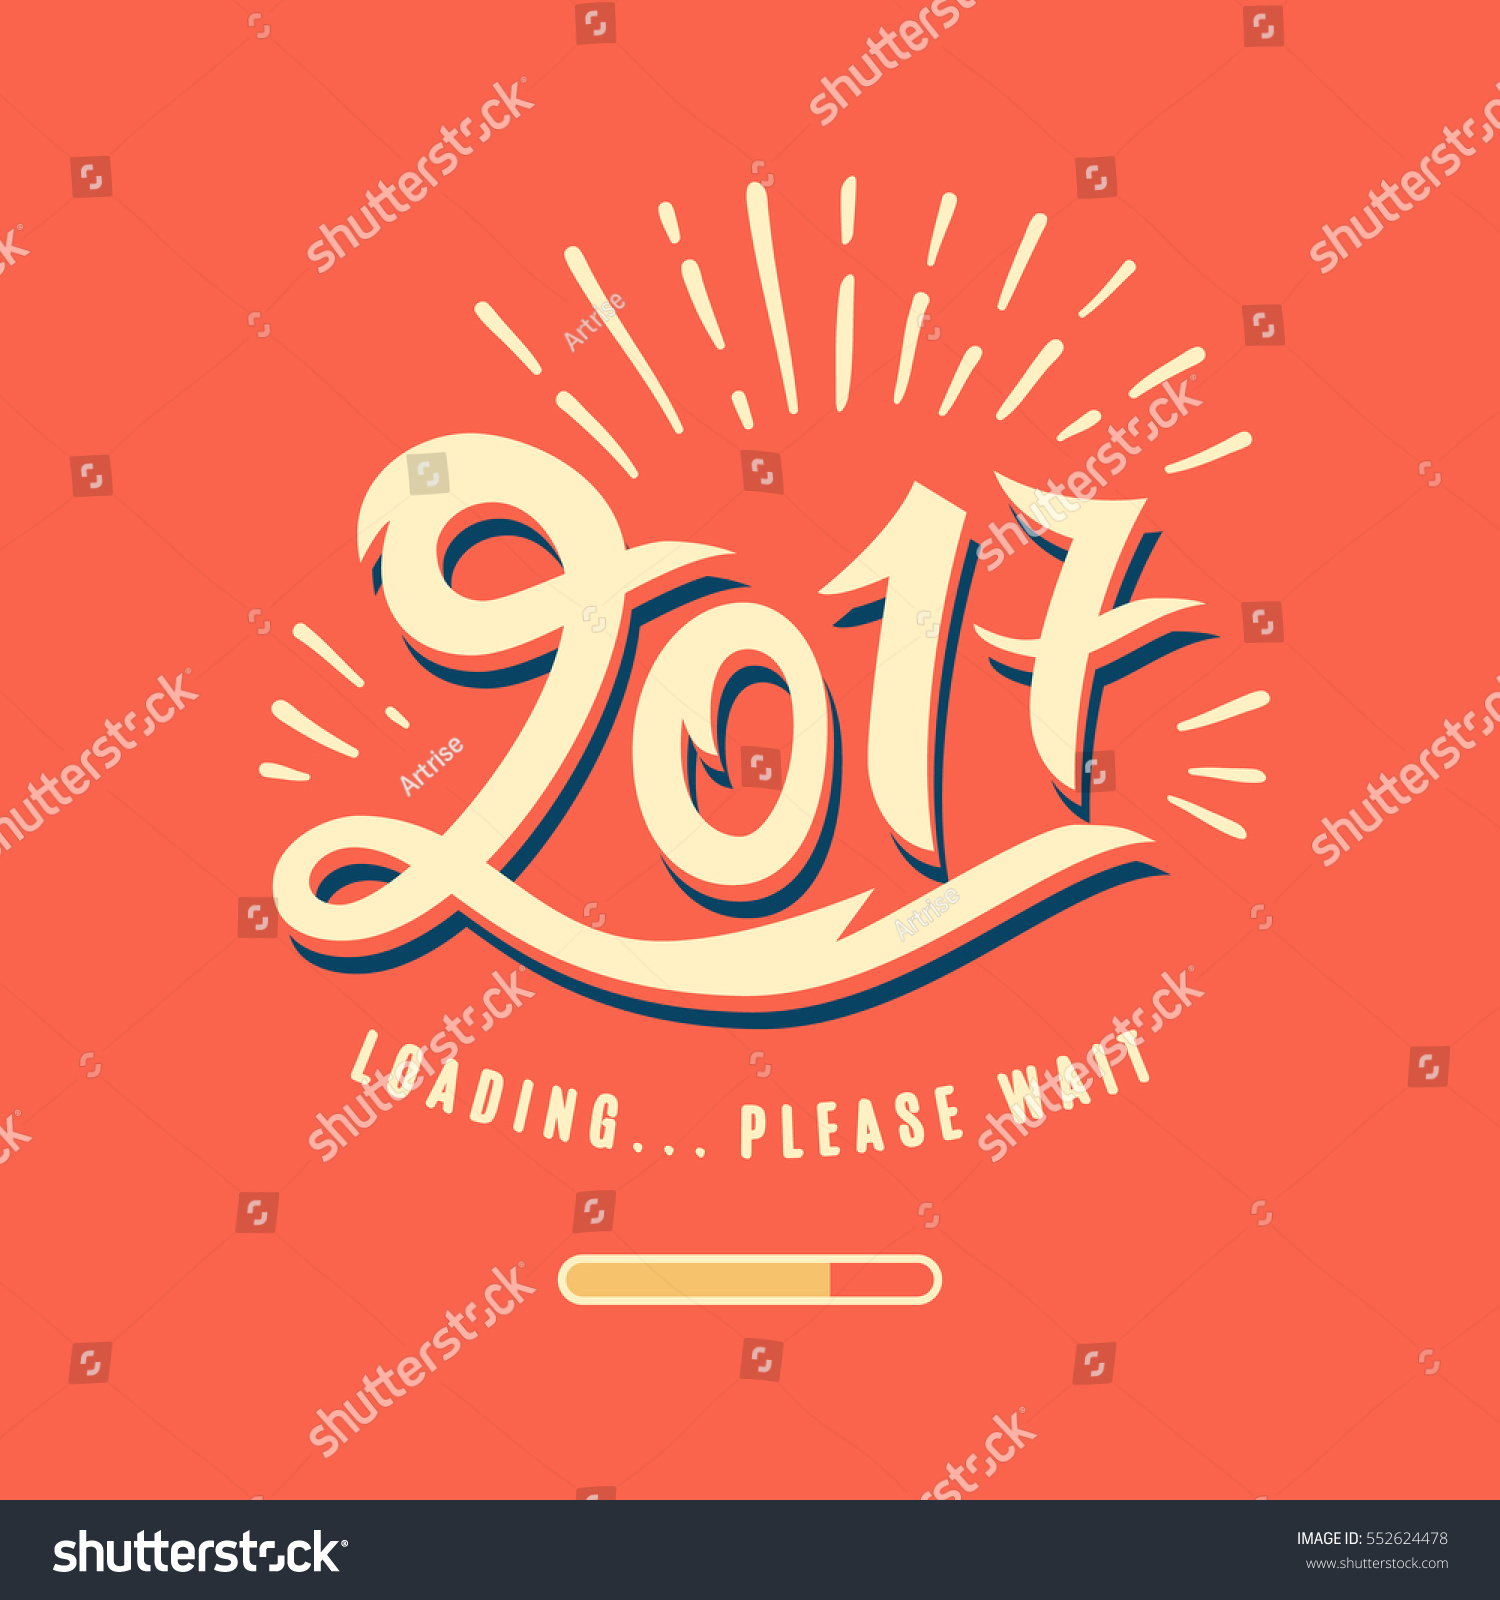 is loading please wait amusing new year poster funny typography design